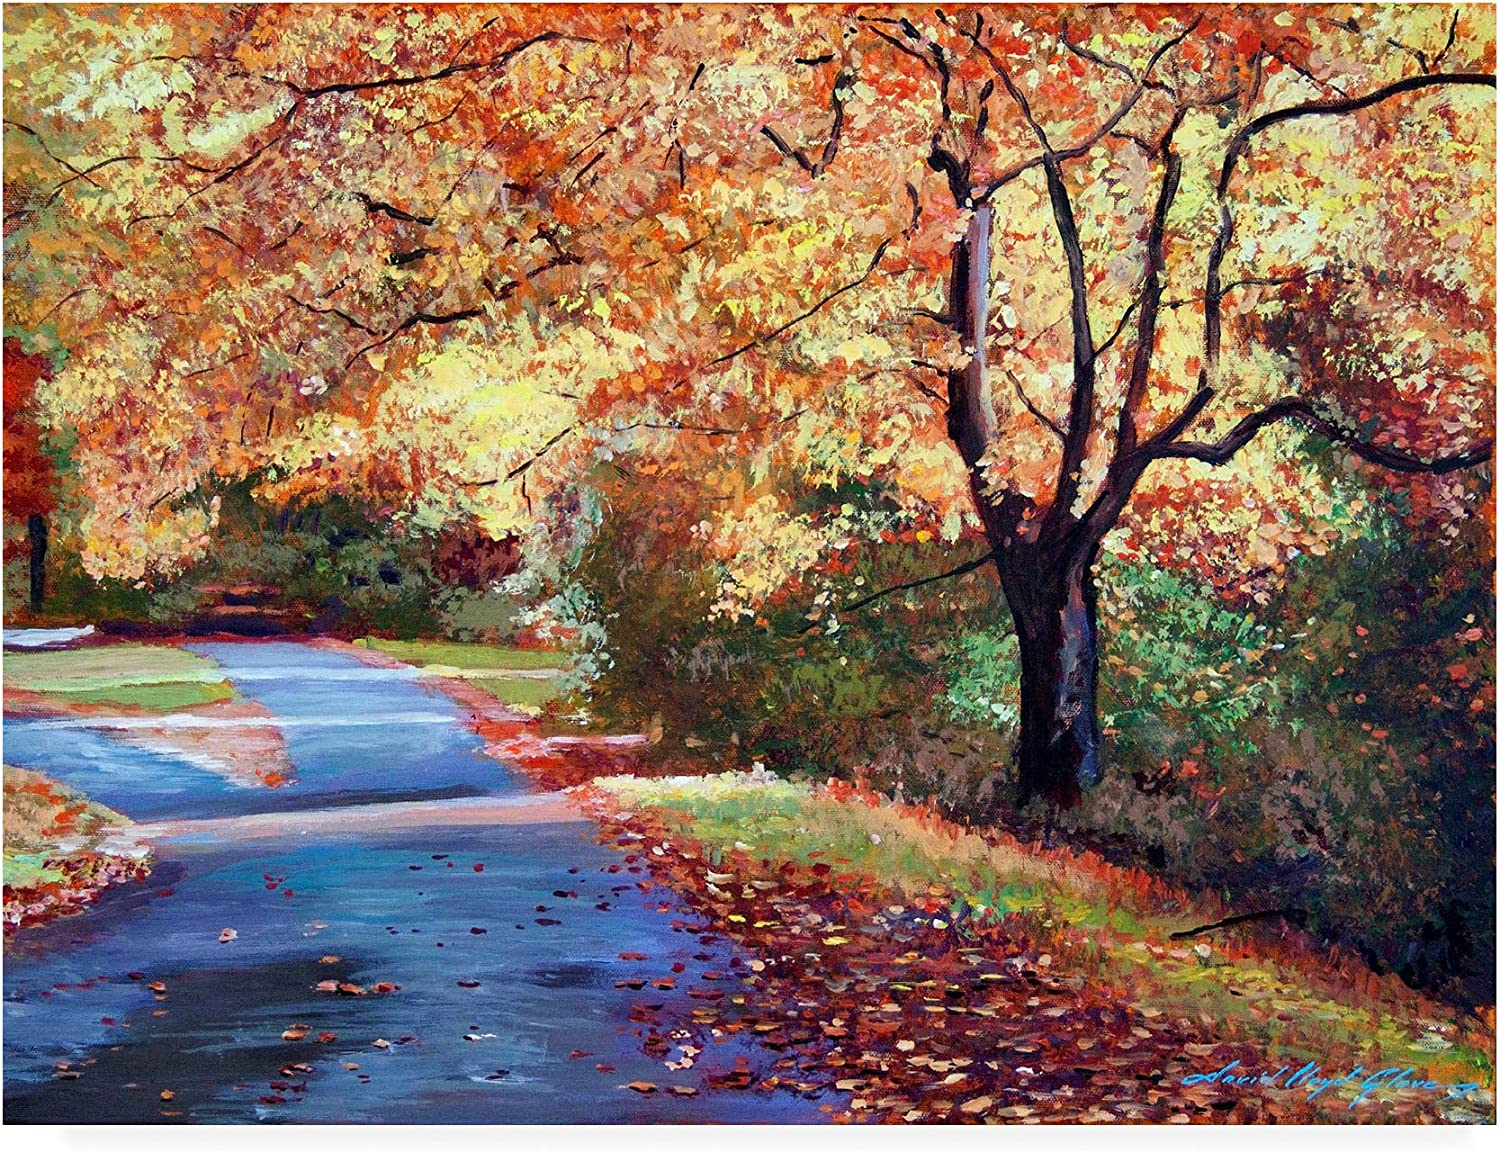 Trademark Limited time trial price Fine Art Fork in The by David Lloyd 24x32 Glover online shopping Road